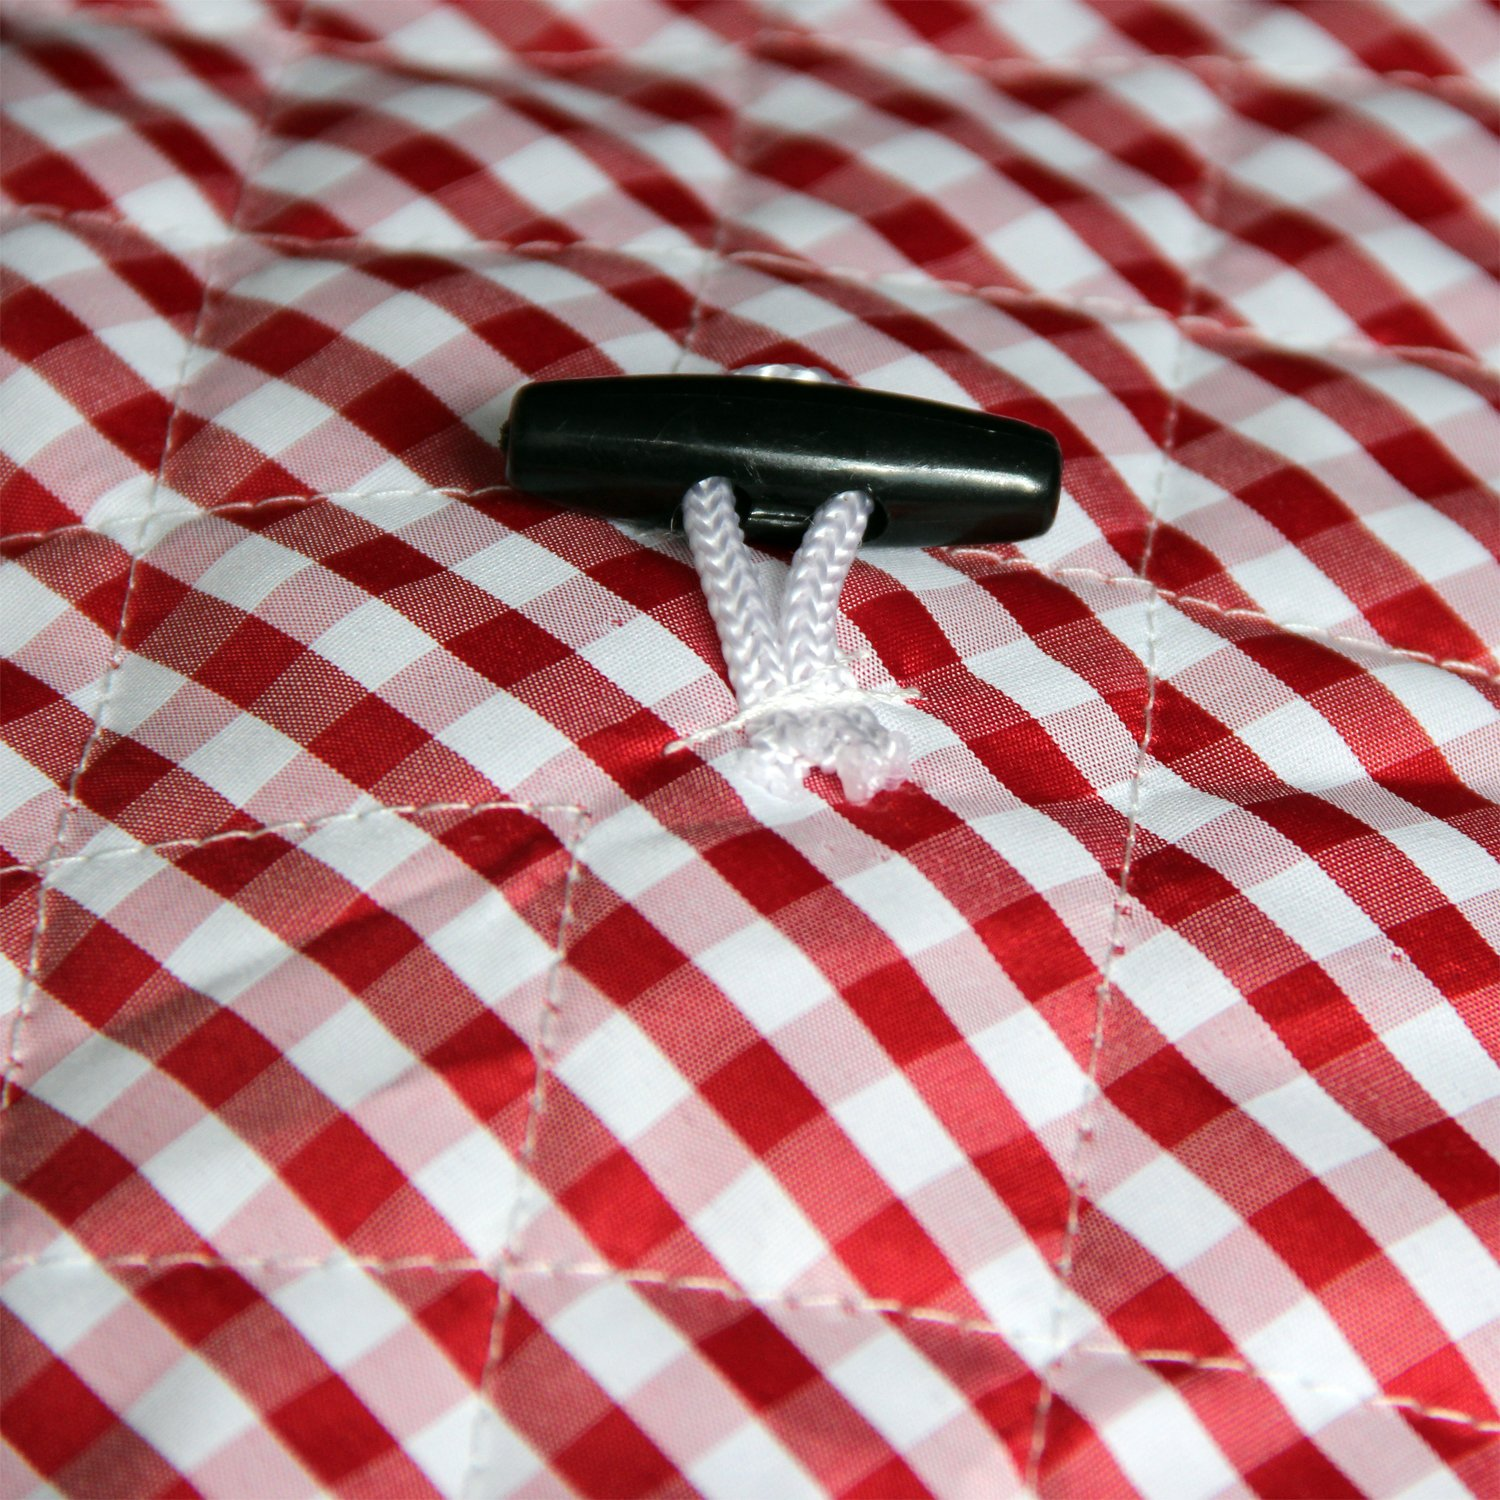 Lexvss Dust Cover, Anti-oil-smoke Cotton Bag for Electric Pressure Cookers, with Accessories Pocket, Family Essential Dust Cover for Instant Pot 6qt, by Lexvss【Red and White Gingham】 by lexvss (Image #3)